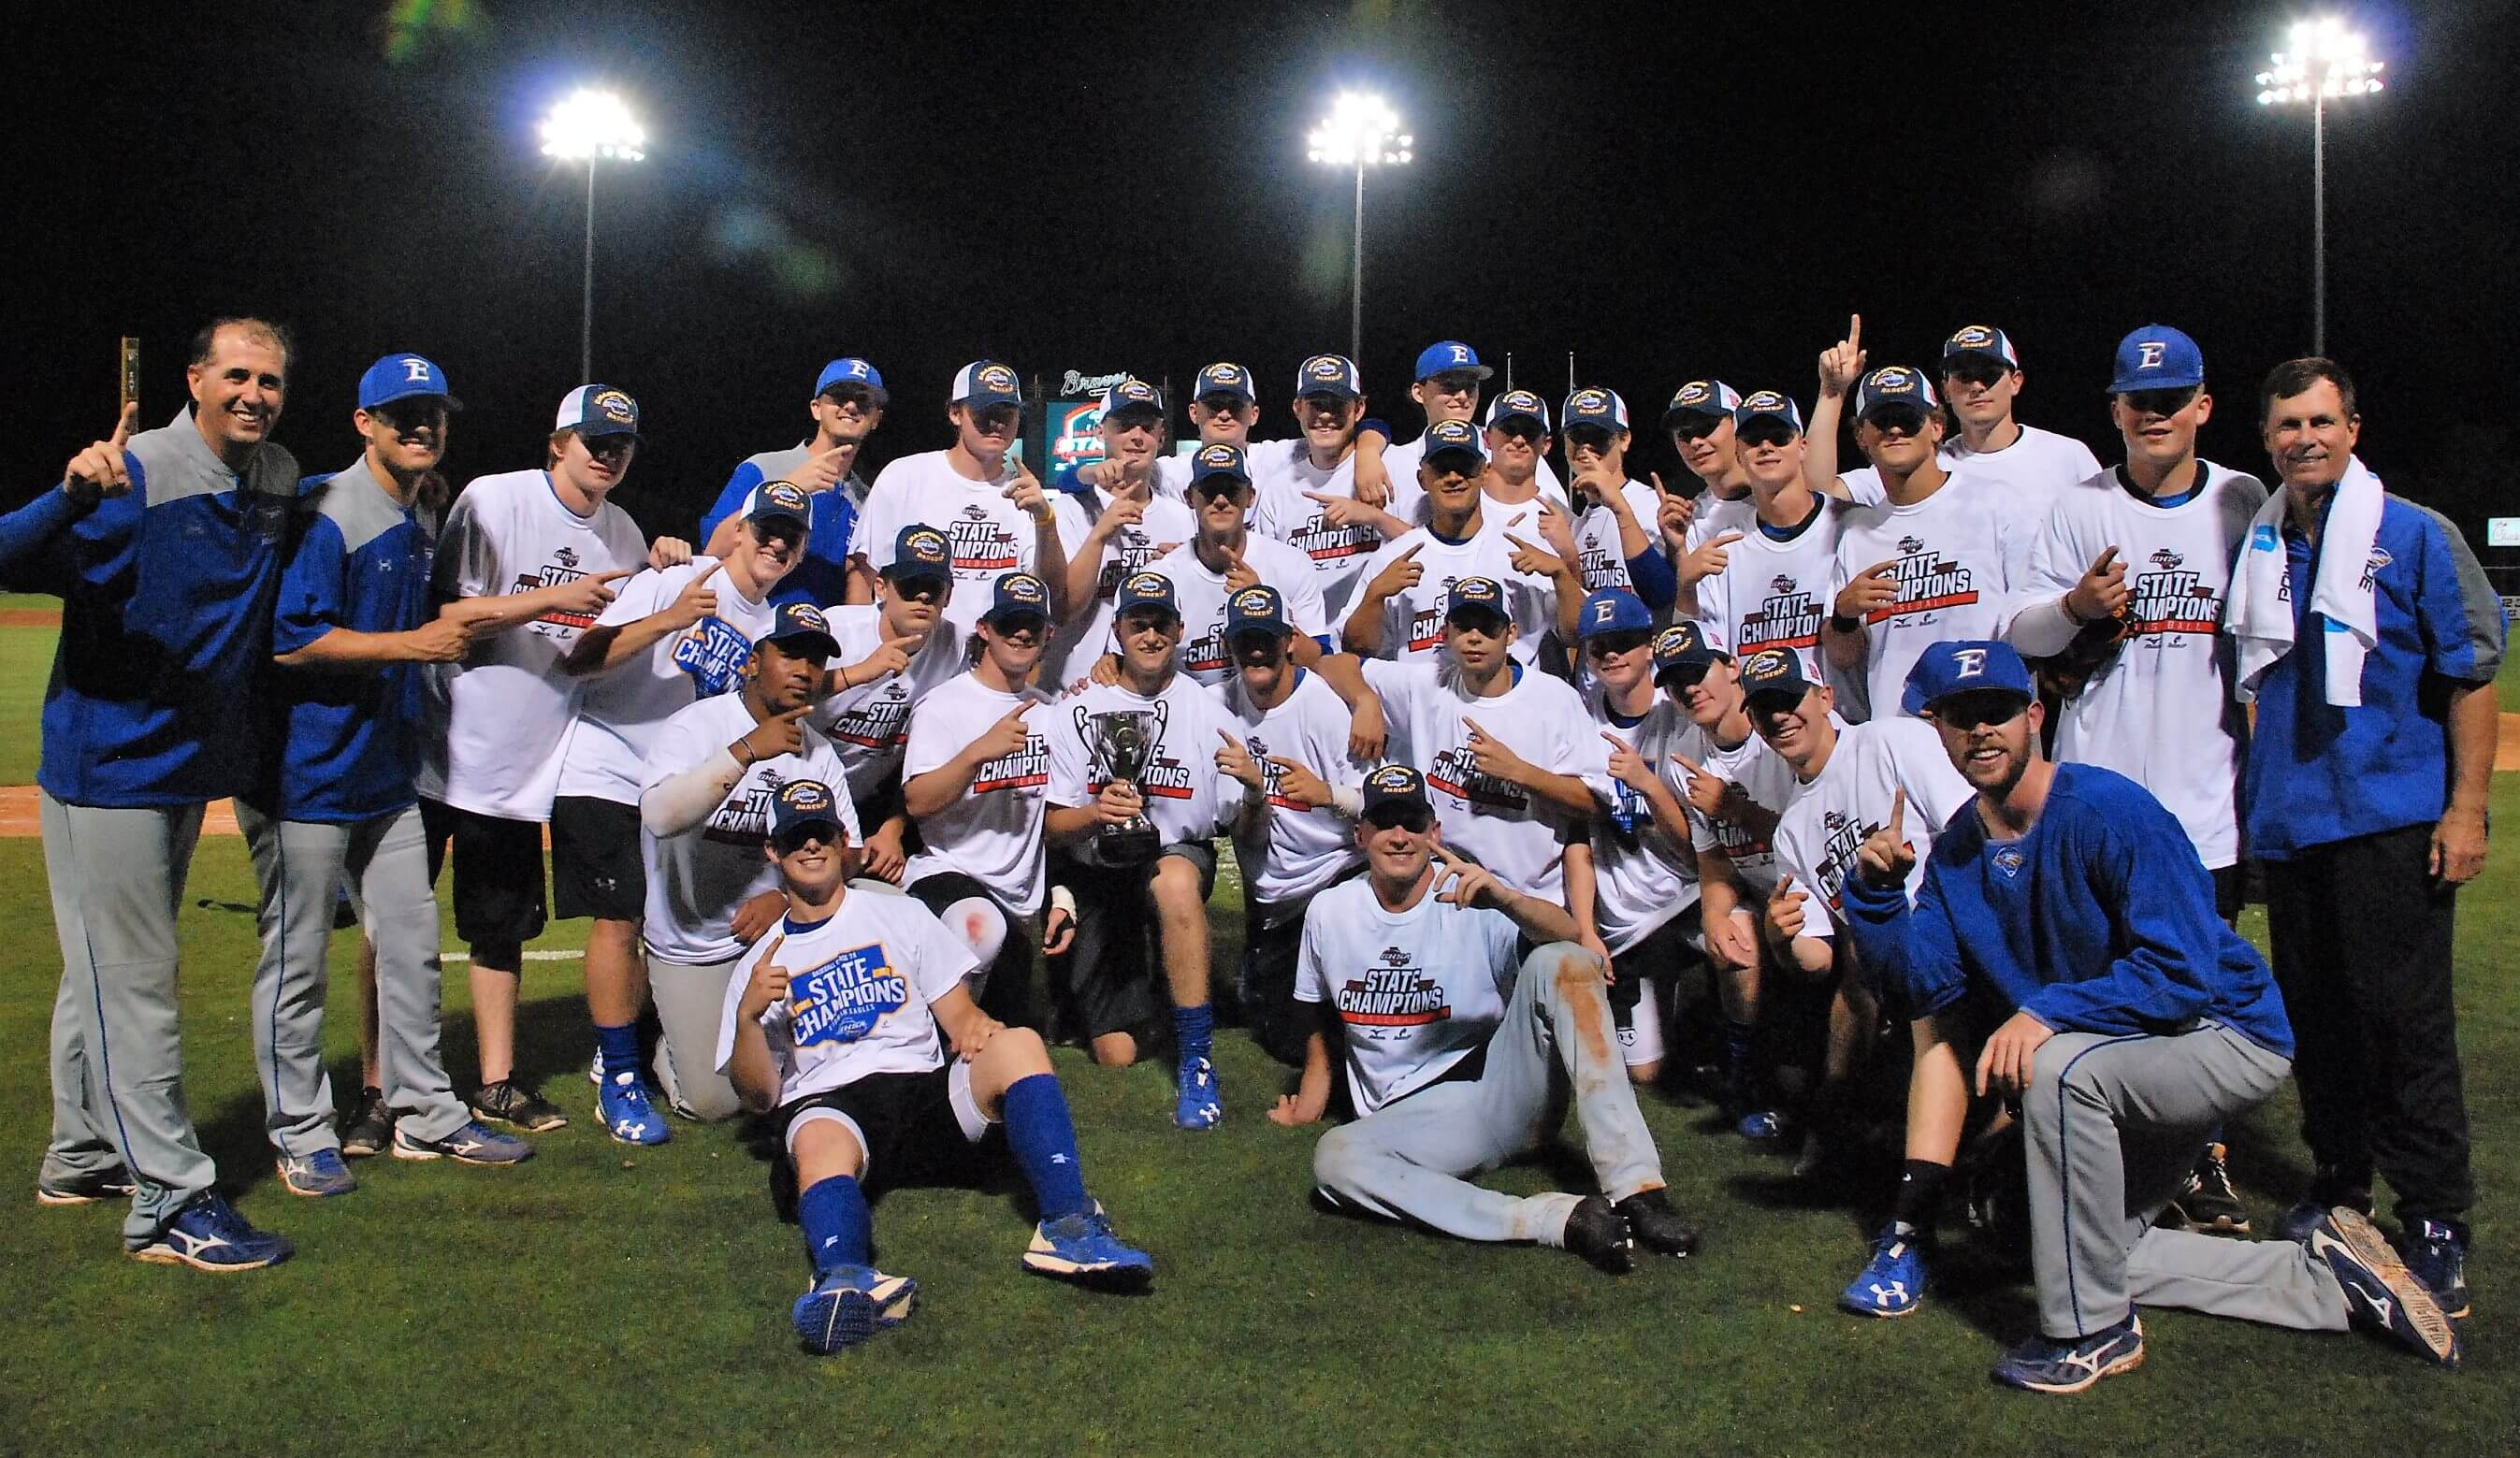 Etowah High School Wins State 7A Baseball Title